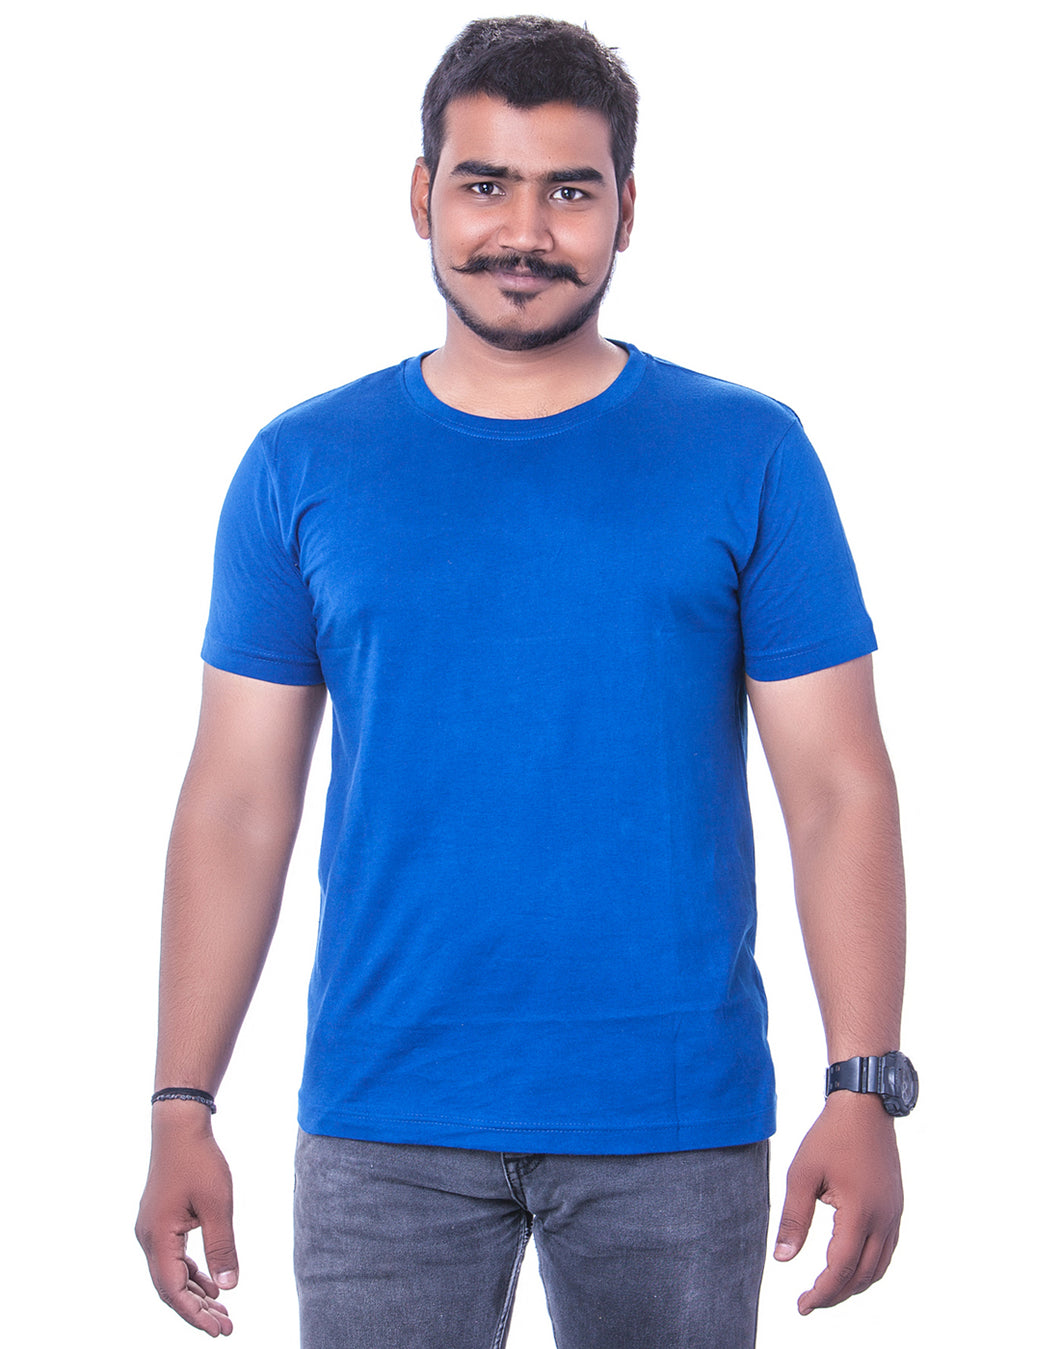 100% Cotton Royal Blue Round Neck T-Shirts - Bestfit Sportswear